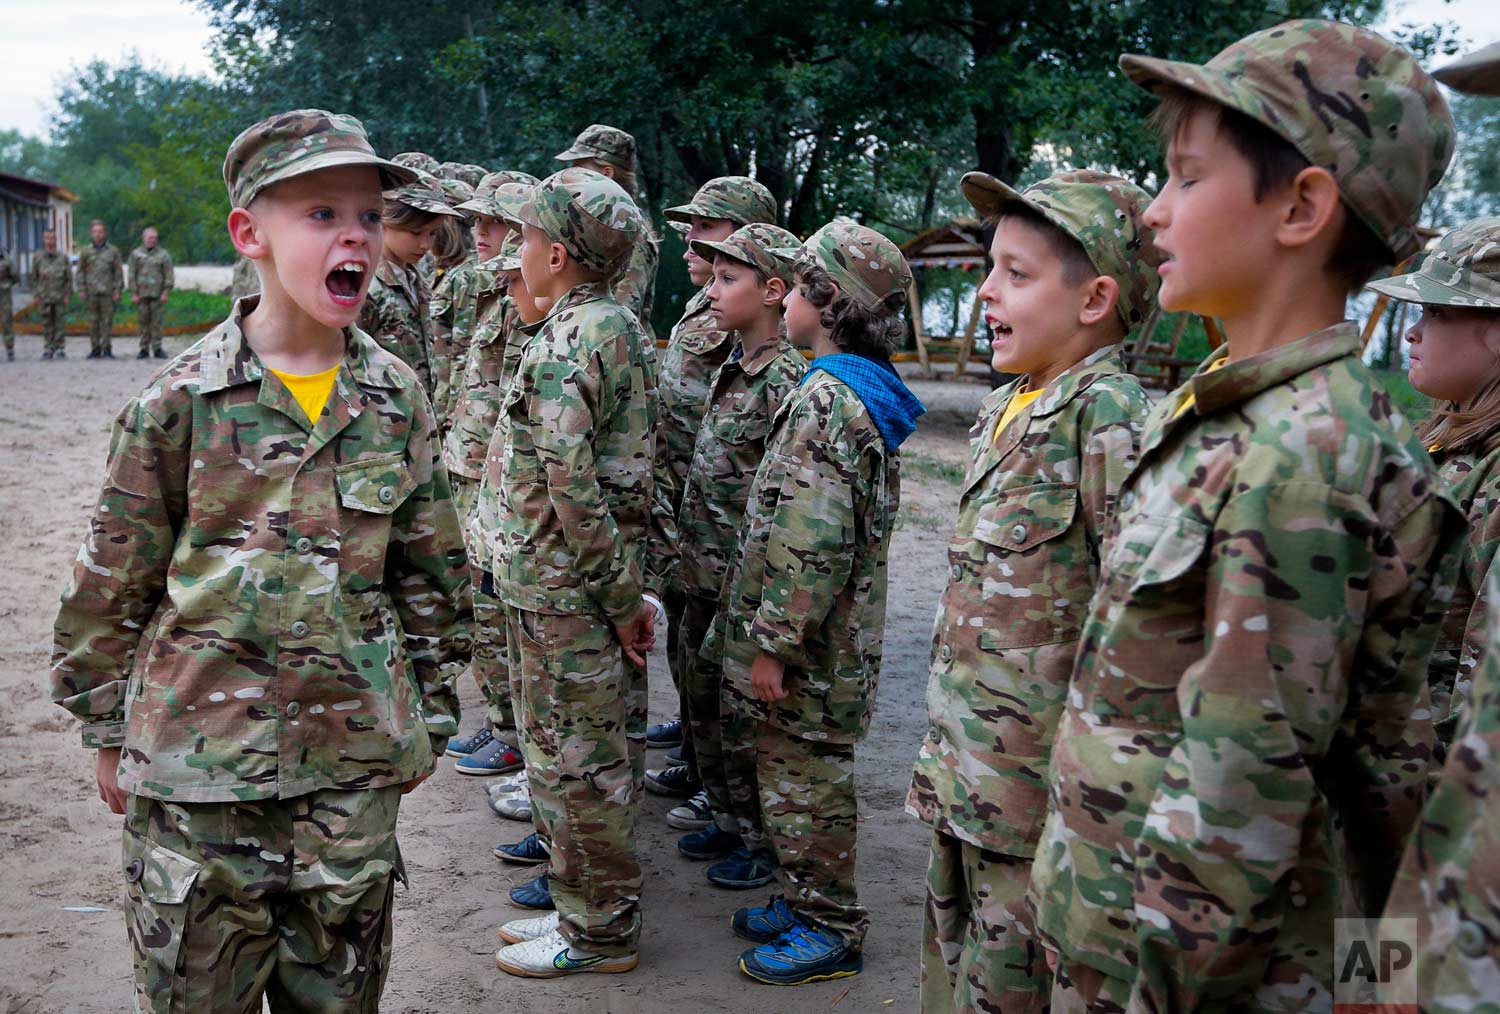 In this photo taken on Friday, July 14, 2017, a student at a paramilitary camp for children calls the rank to attention outside Kiev, Ukraine. (AP Photo/Efrem Lukatsky)